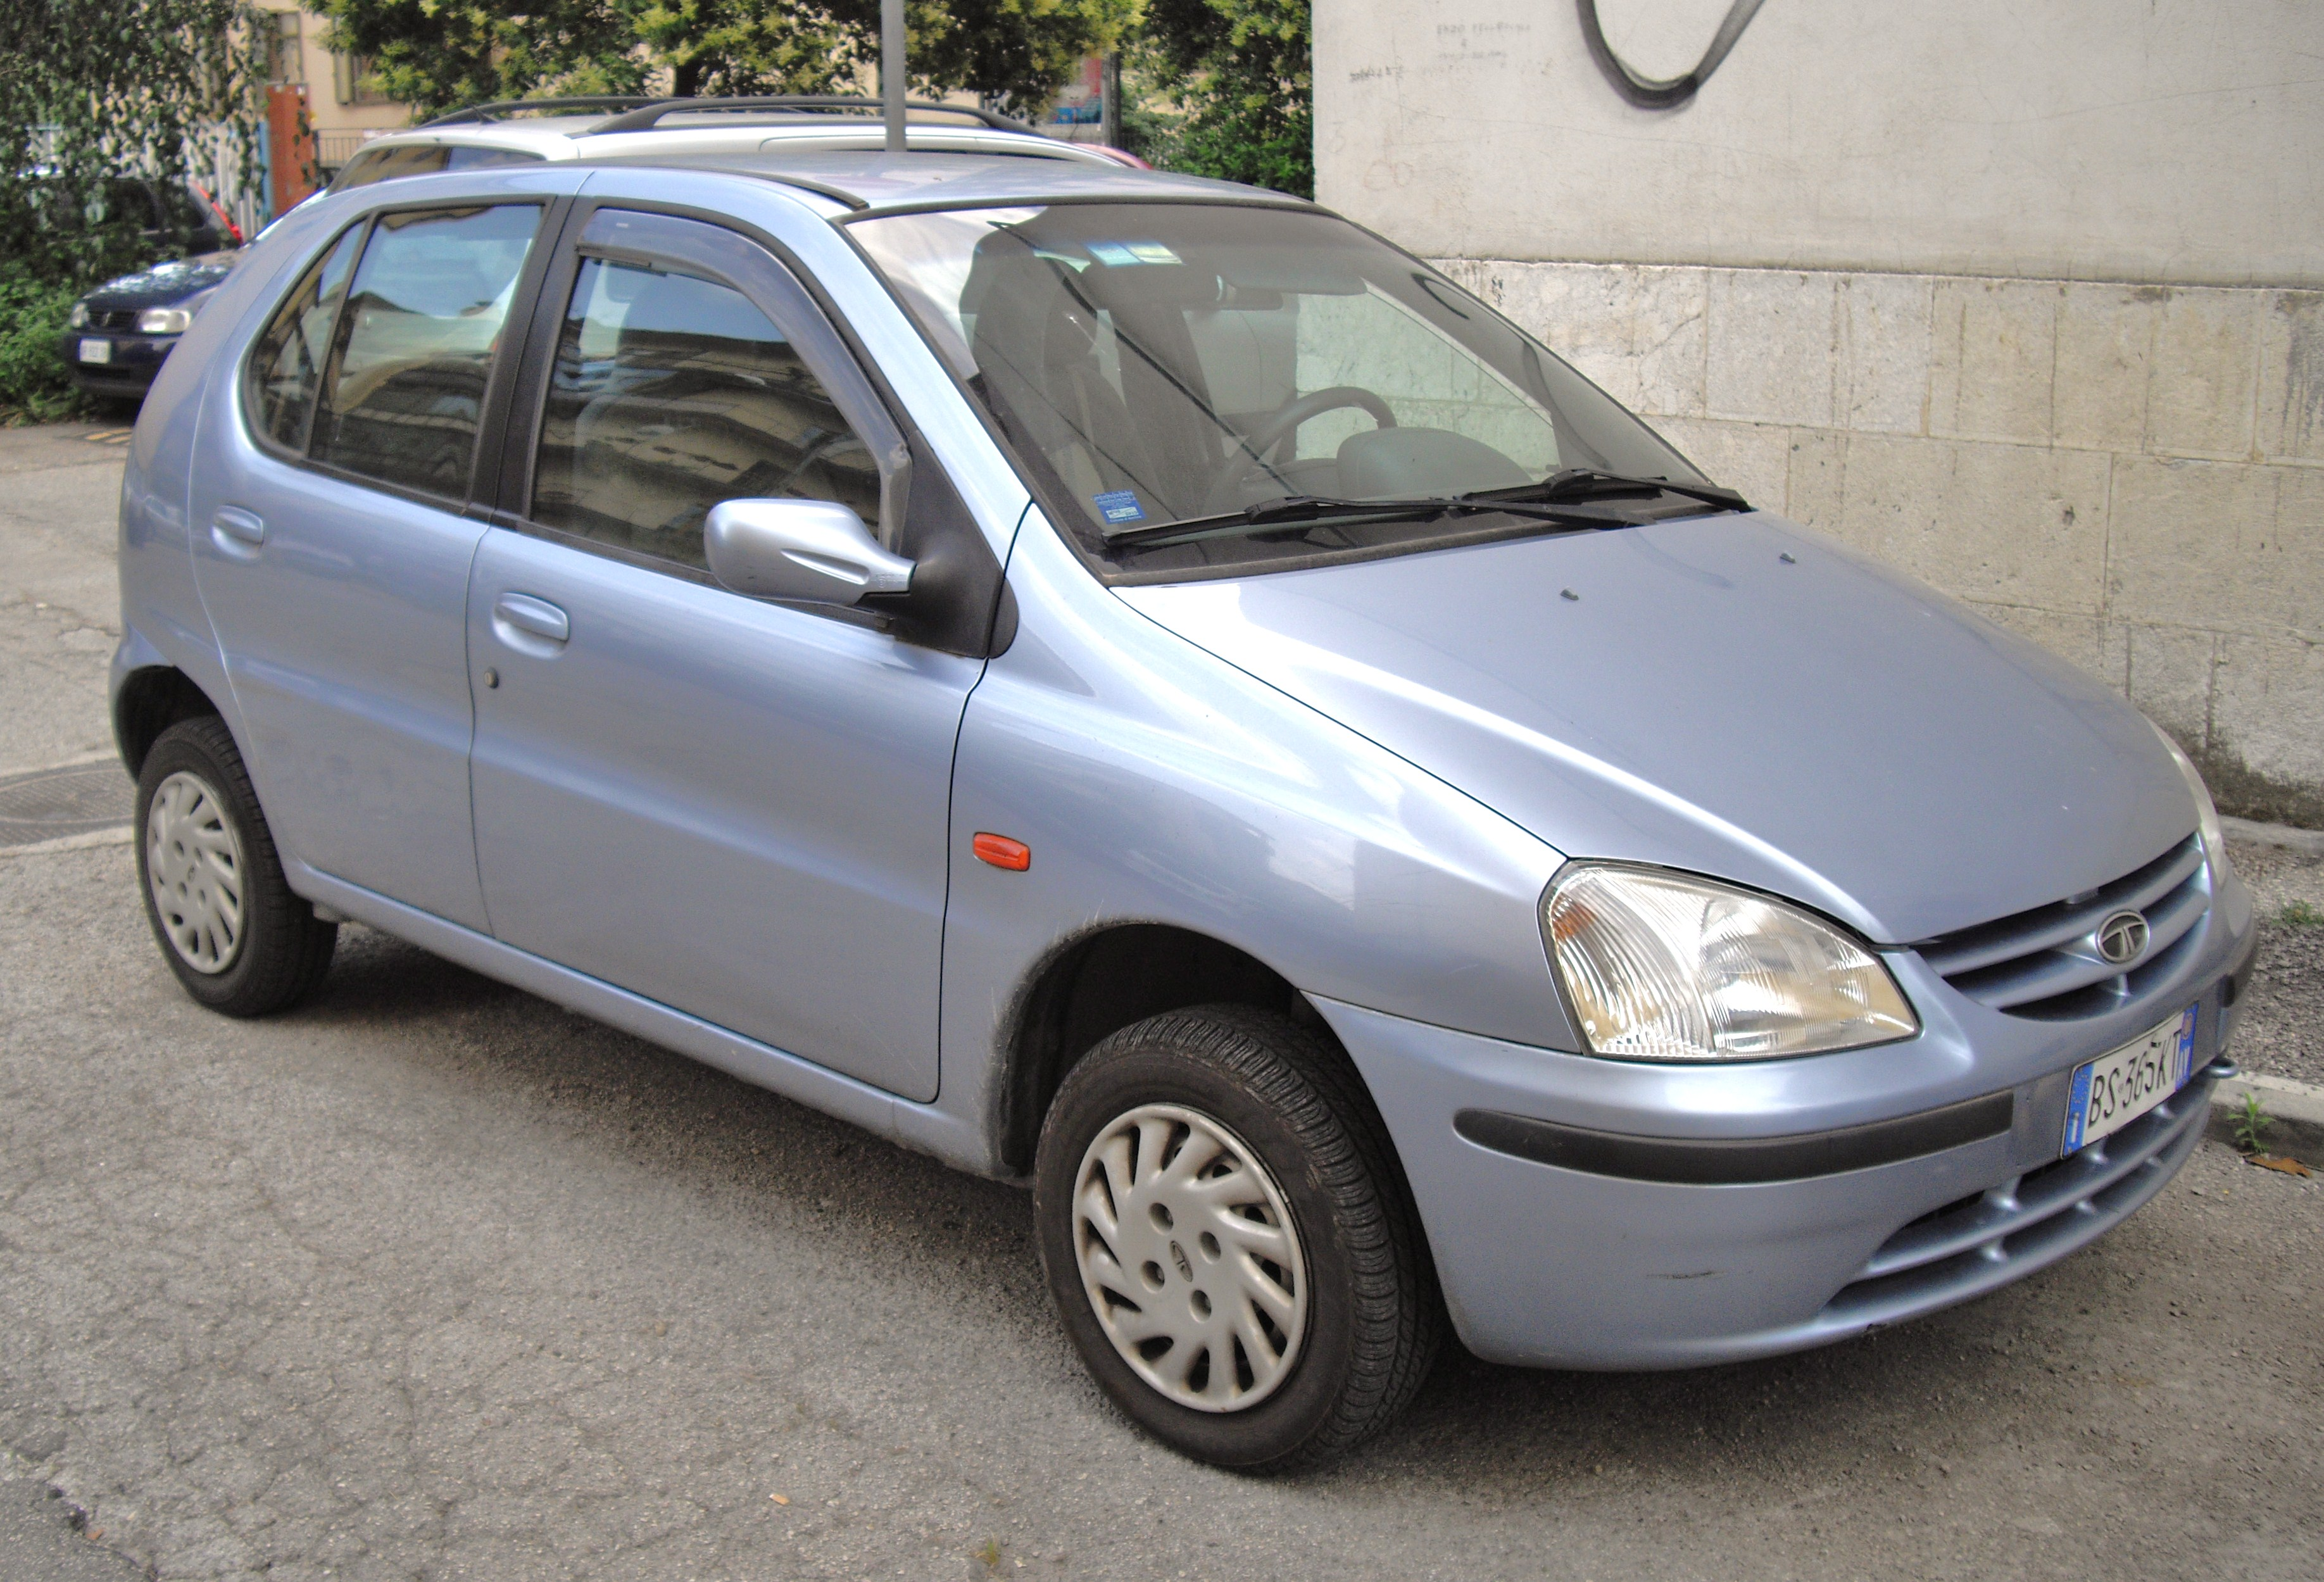 Tata Indica Cars Price List In Hyderabad